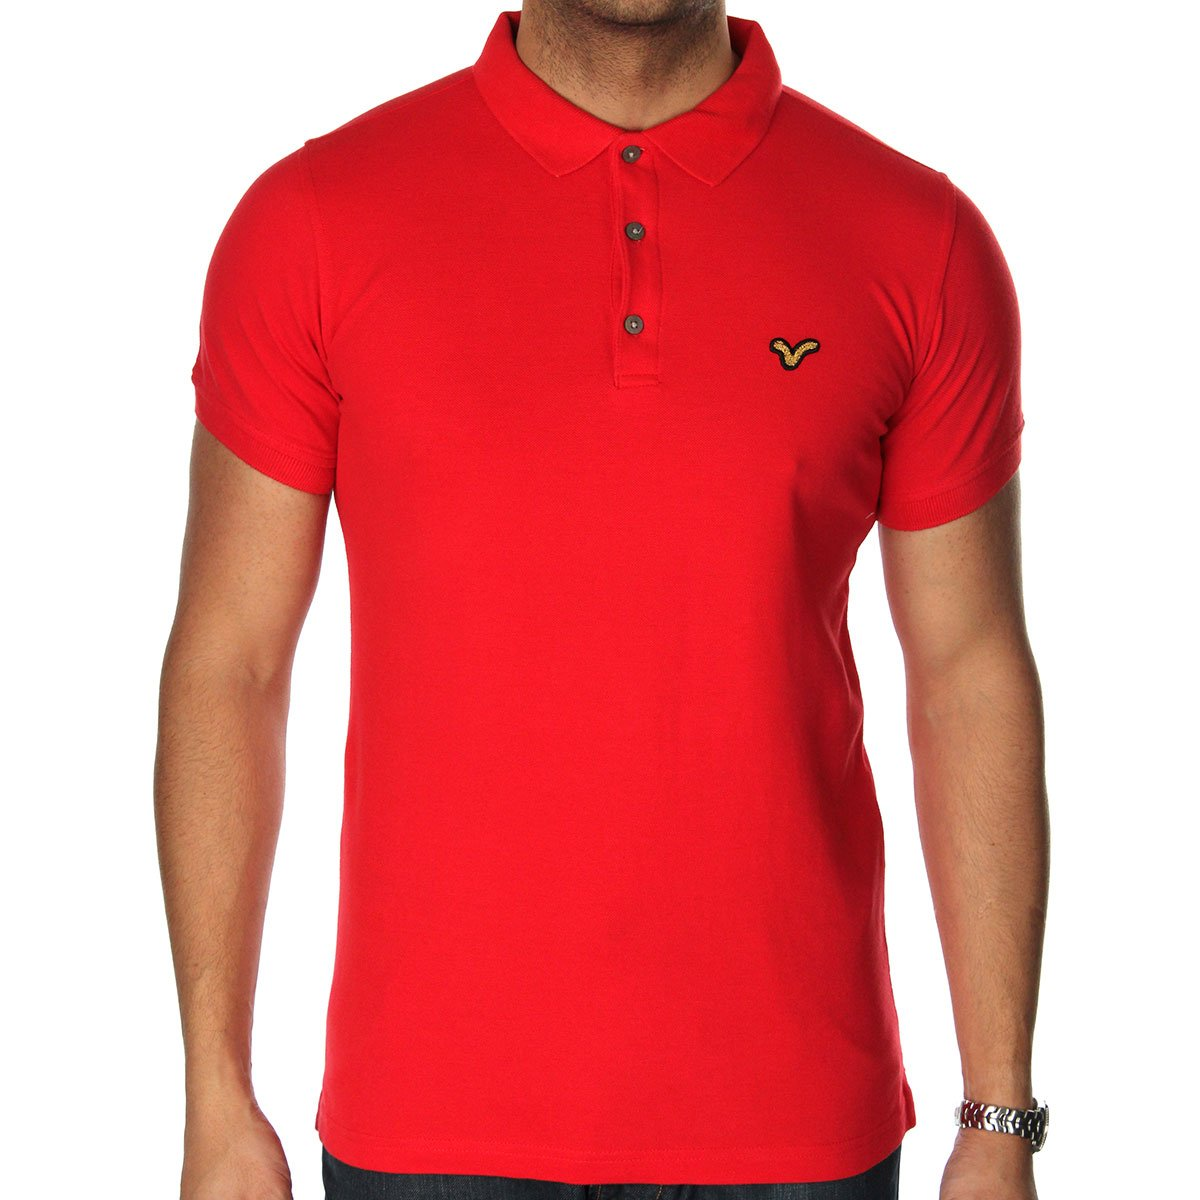 Voi Jeans Redford Polo T Shirt Voi Jeans From The